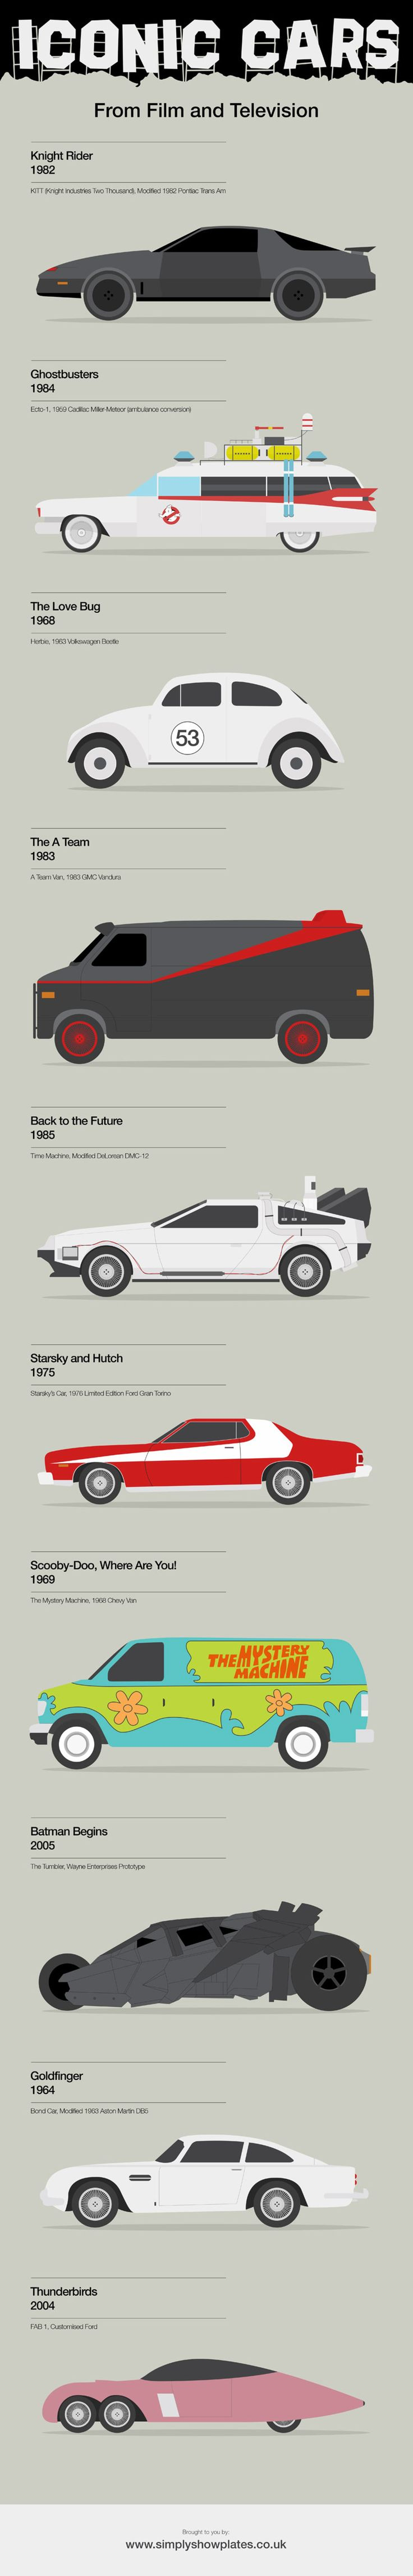 Iconic Cars from Film and Television #Infographic #infografía